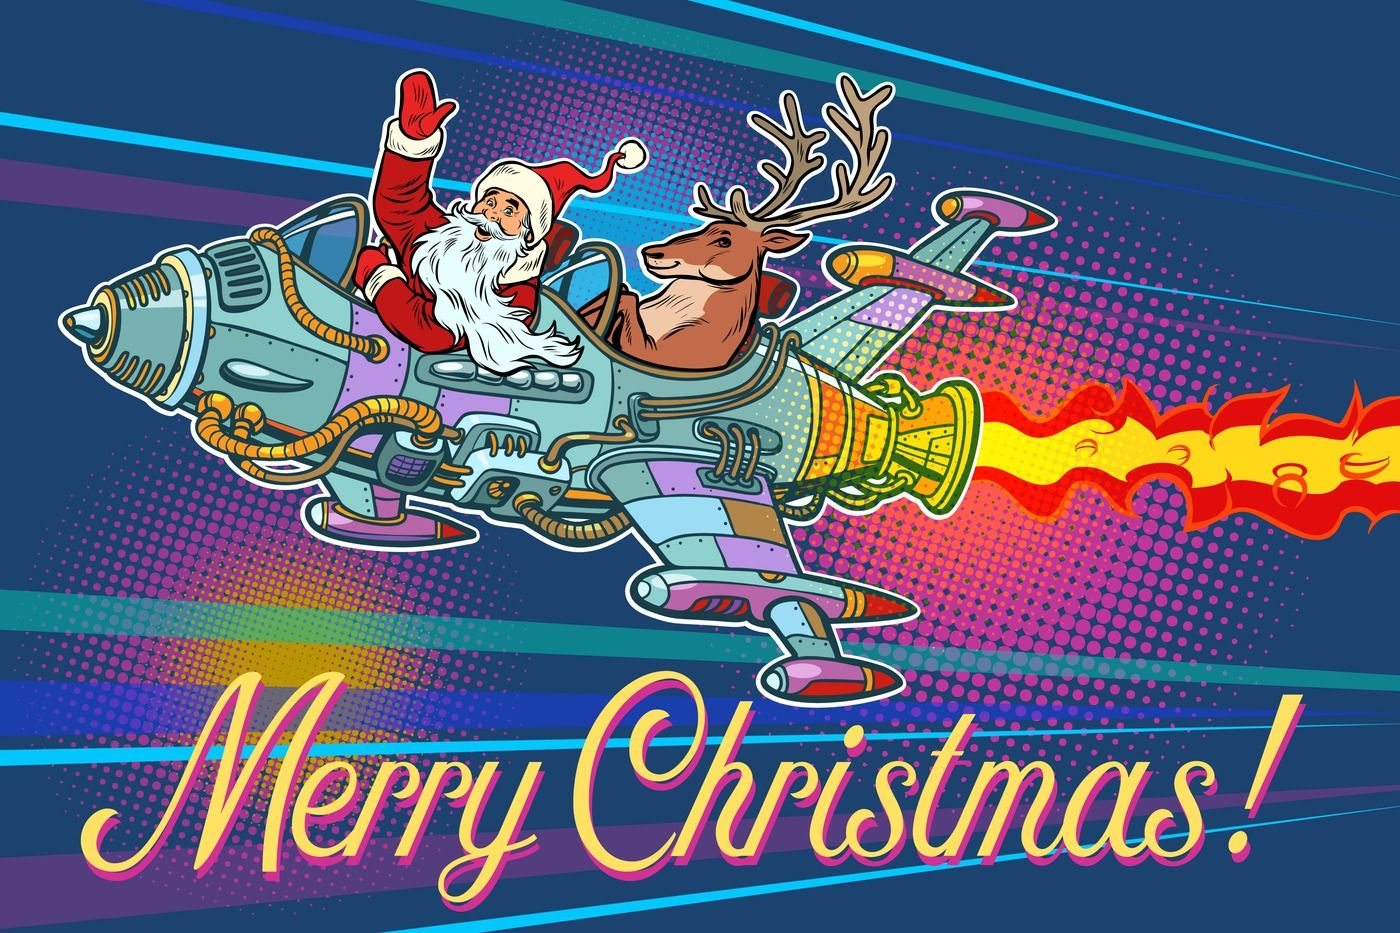 Merry Christmas Retro Santa Claus With A Deer Flying On A Rocke